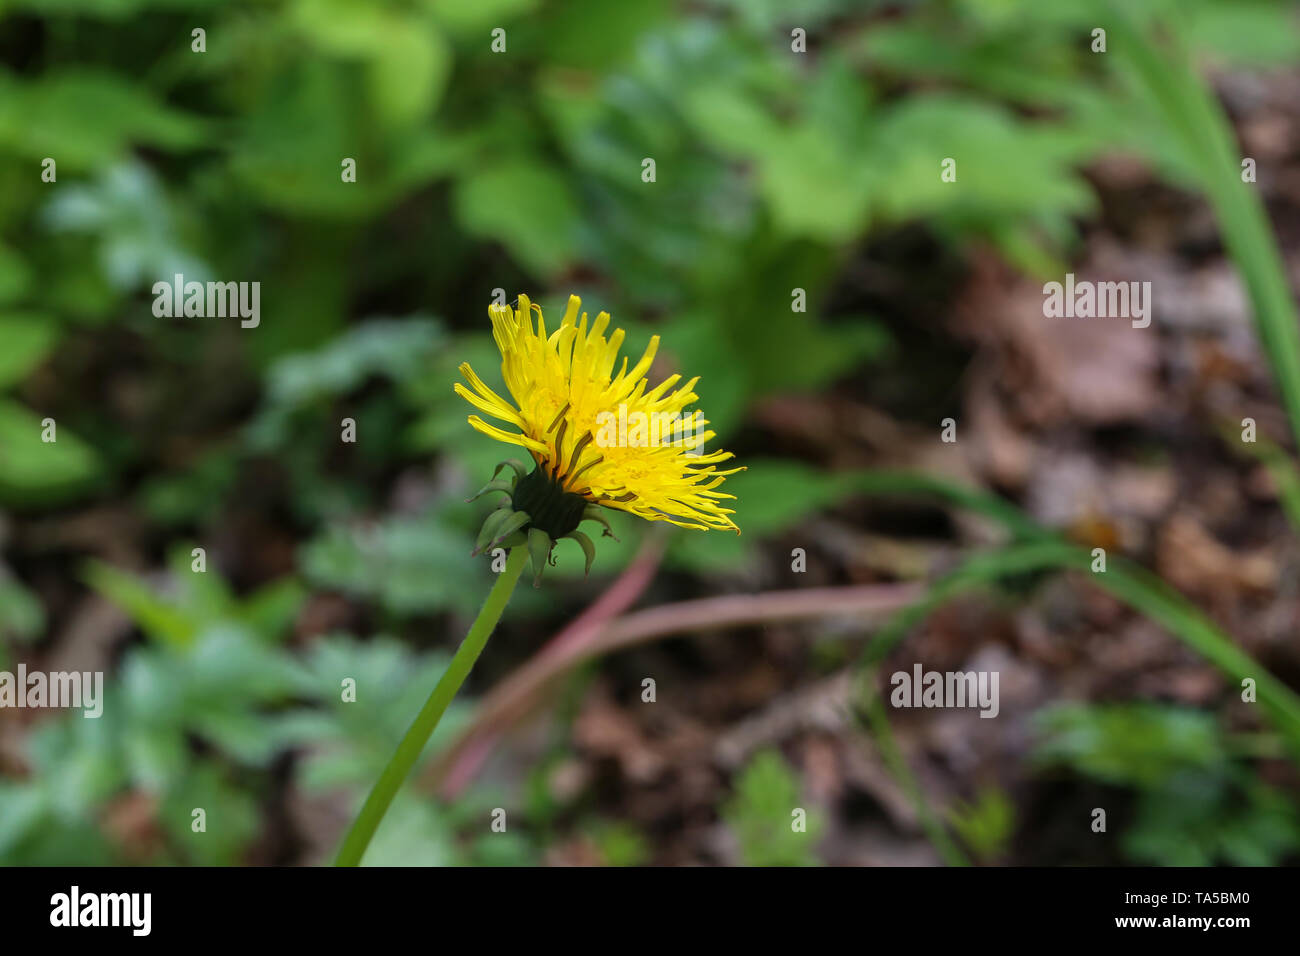 Bloomed dandelion in nature grows from green grass. Nature background of dandelions in the grass. Green nature background. - Stock Image